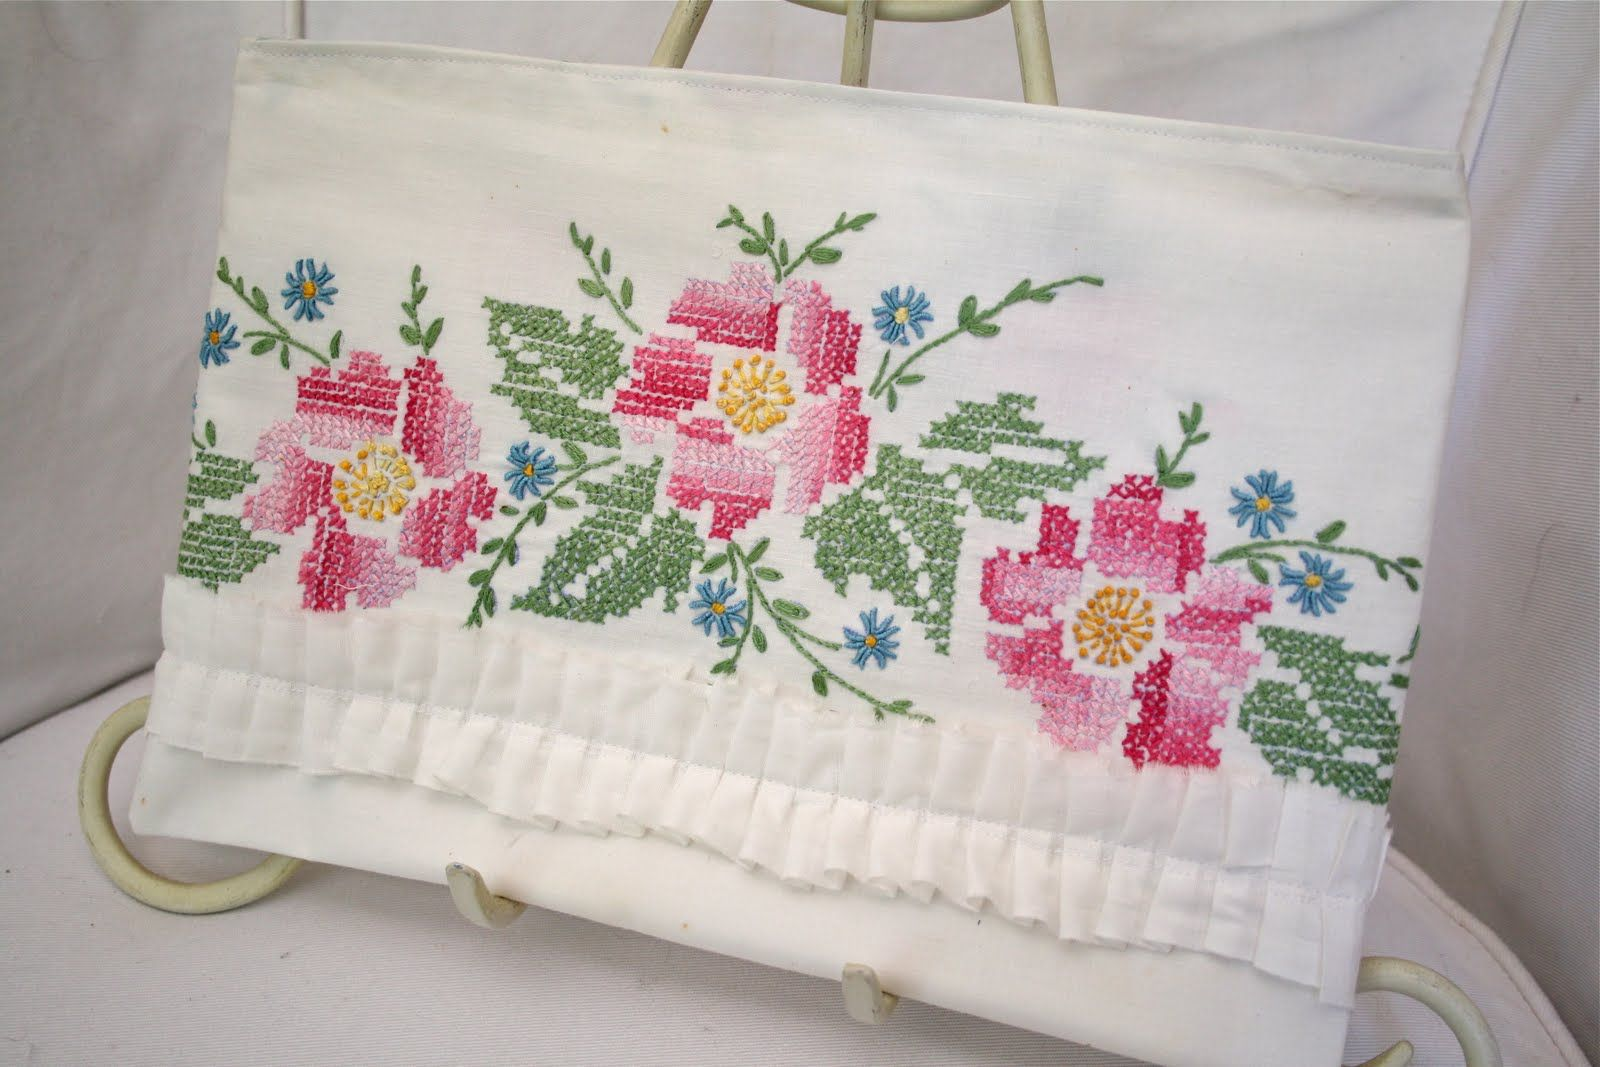 Bed sheet designs hand embroidery - Hand Embroidery Designs For Bed Sheets H Ada Googlom